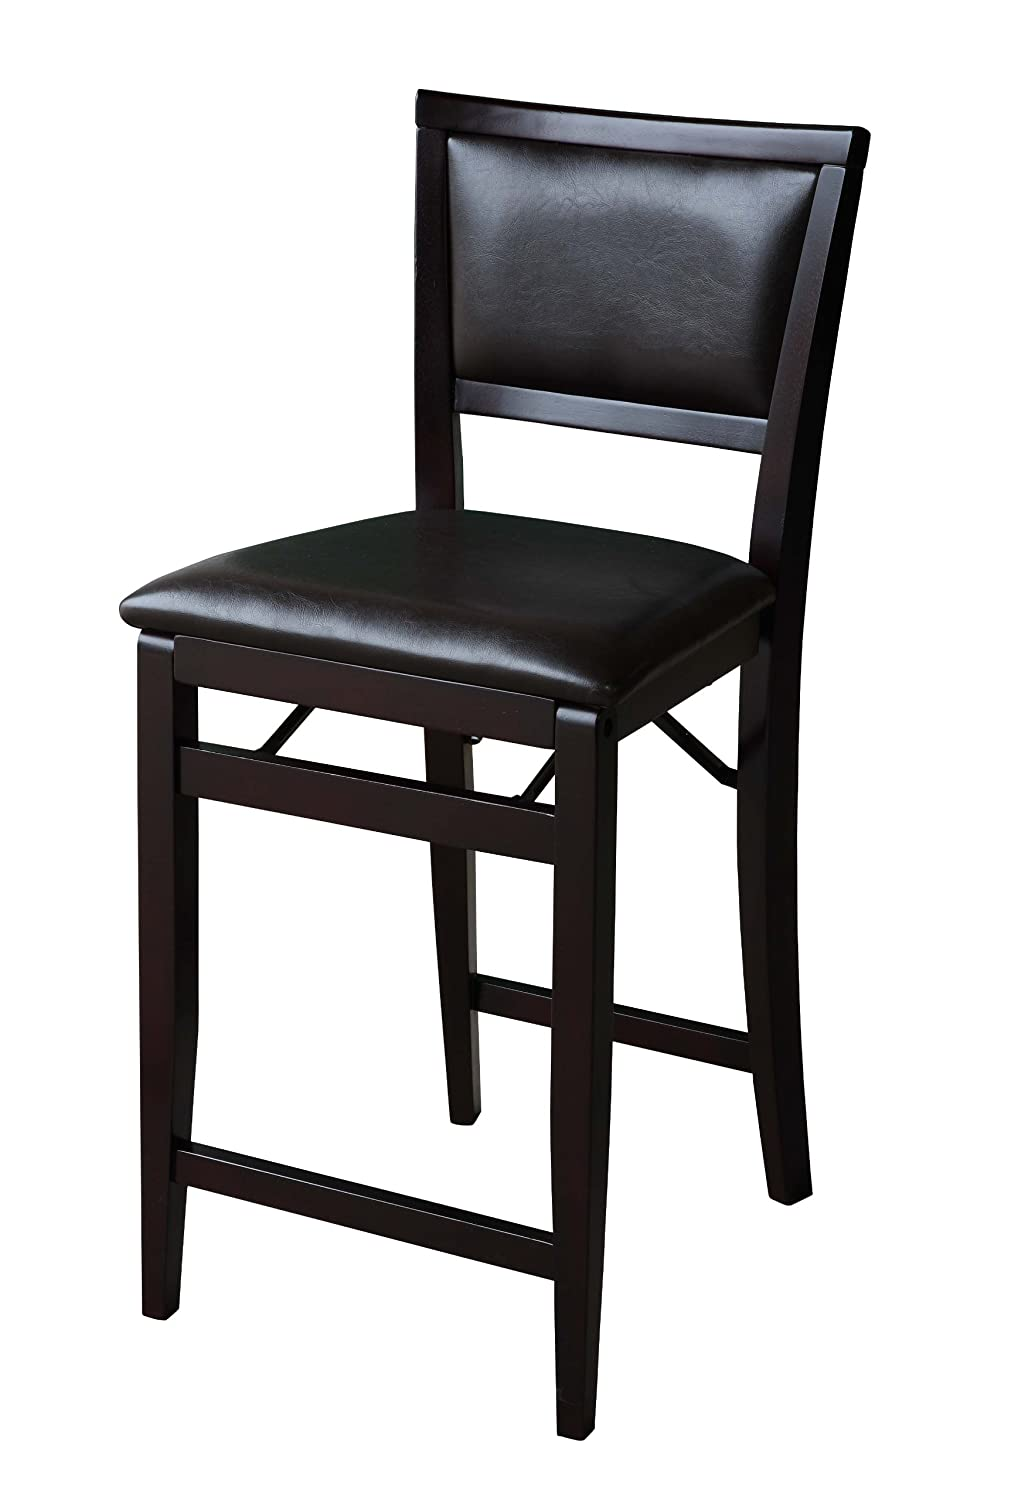 The Great Features of Bar Stools